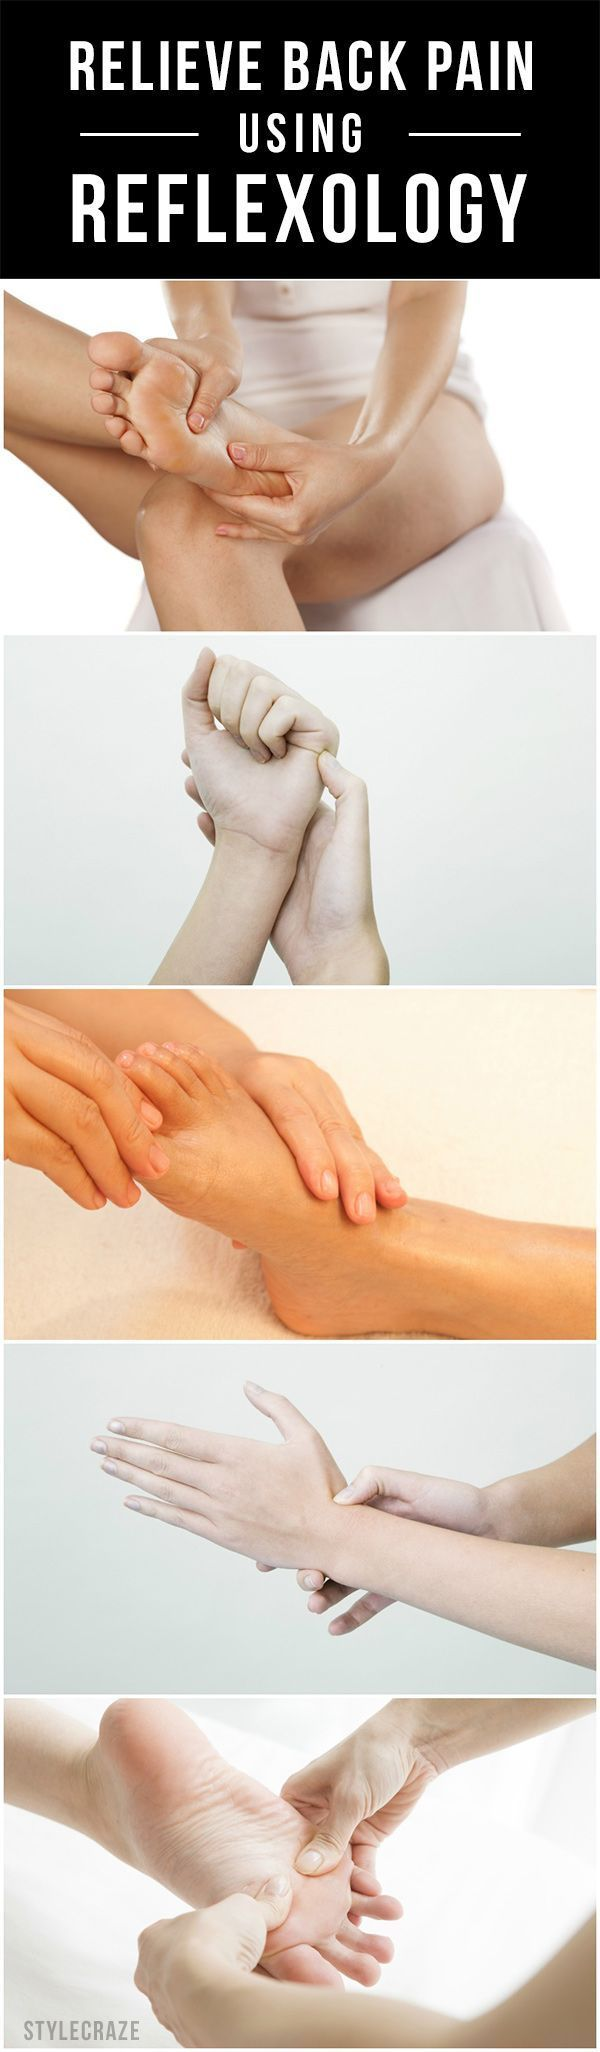 Foot massage relieves back pain 48